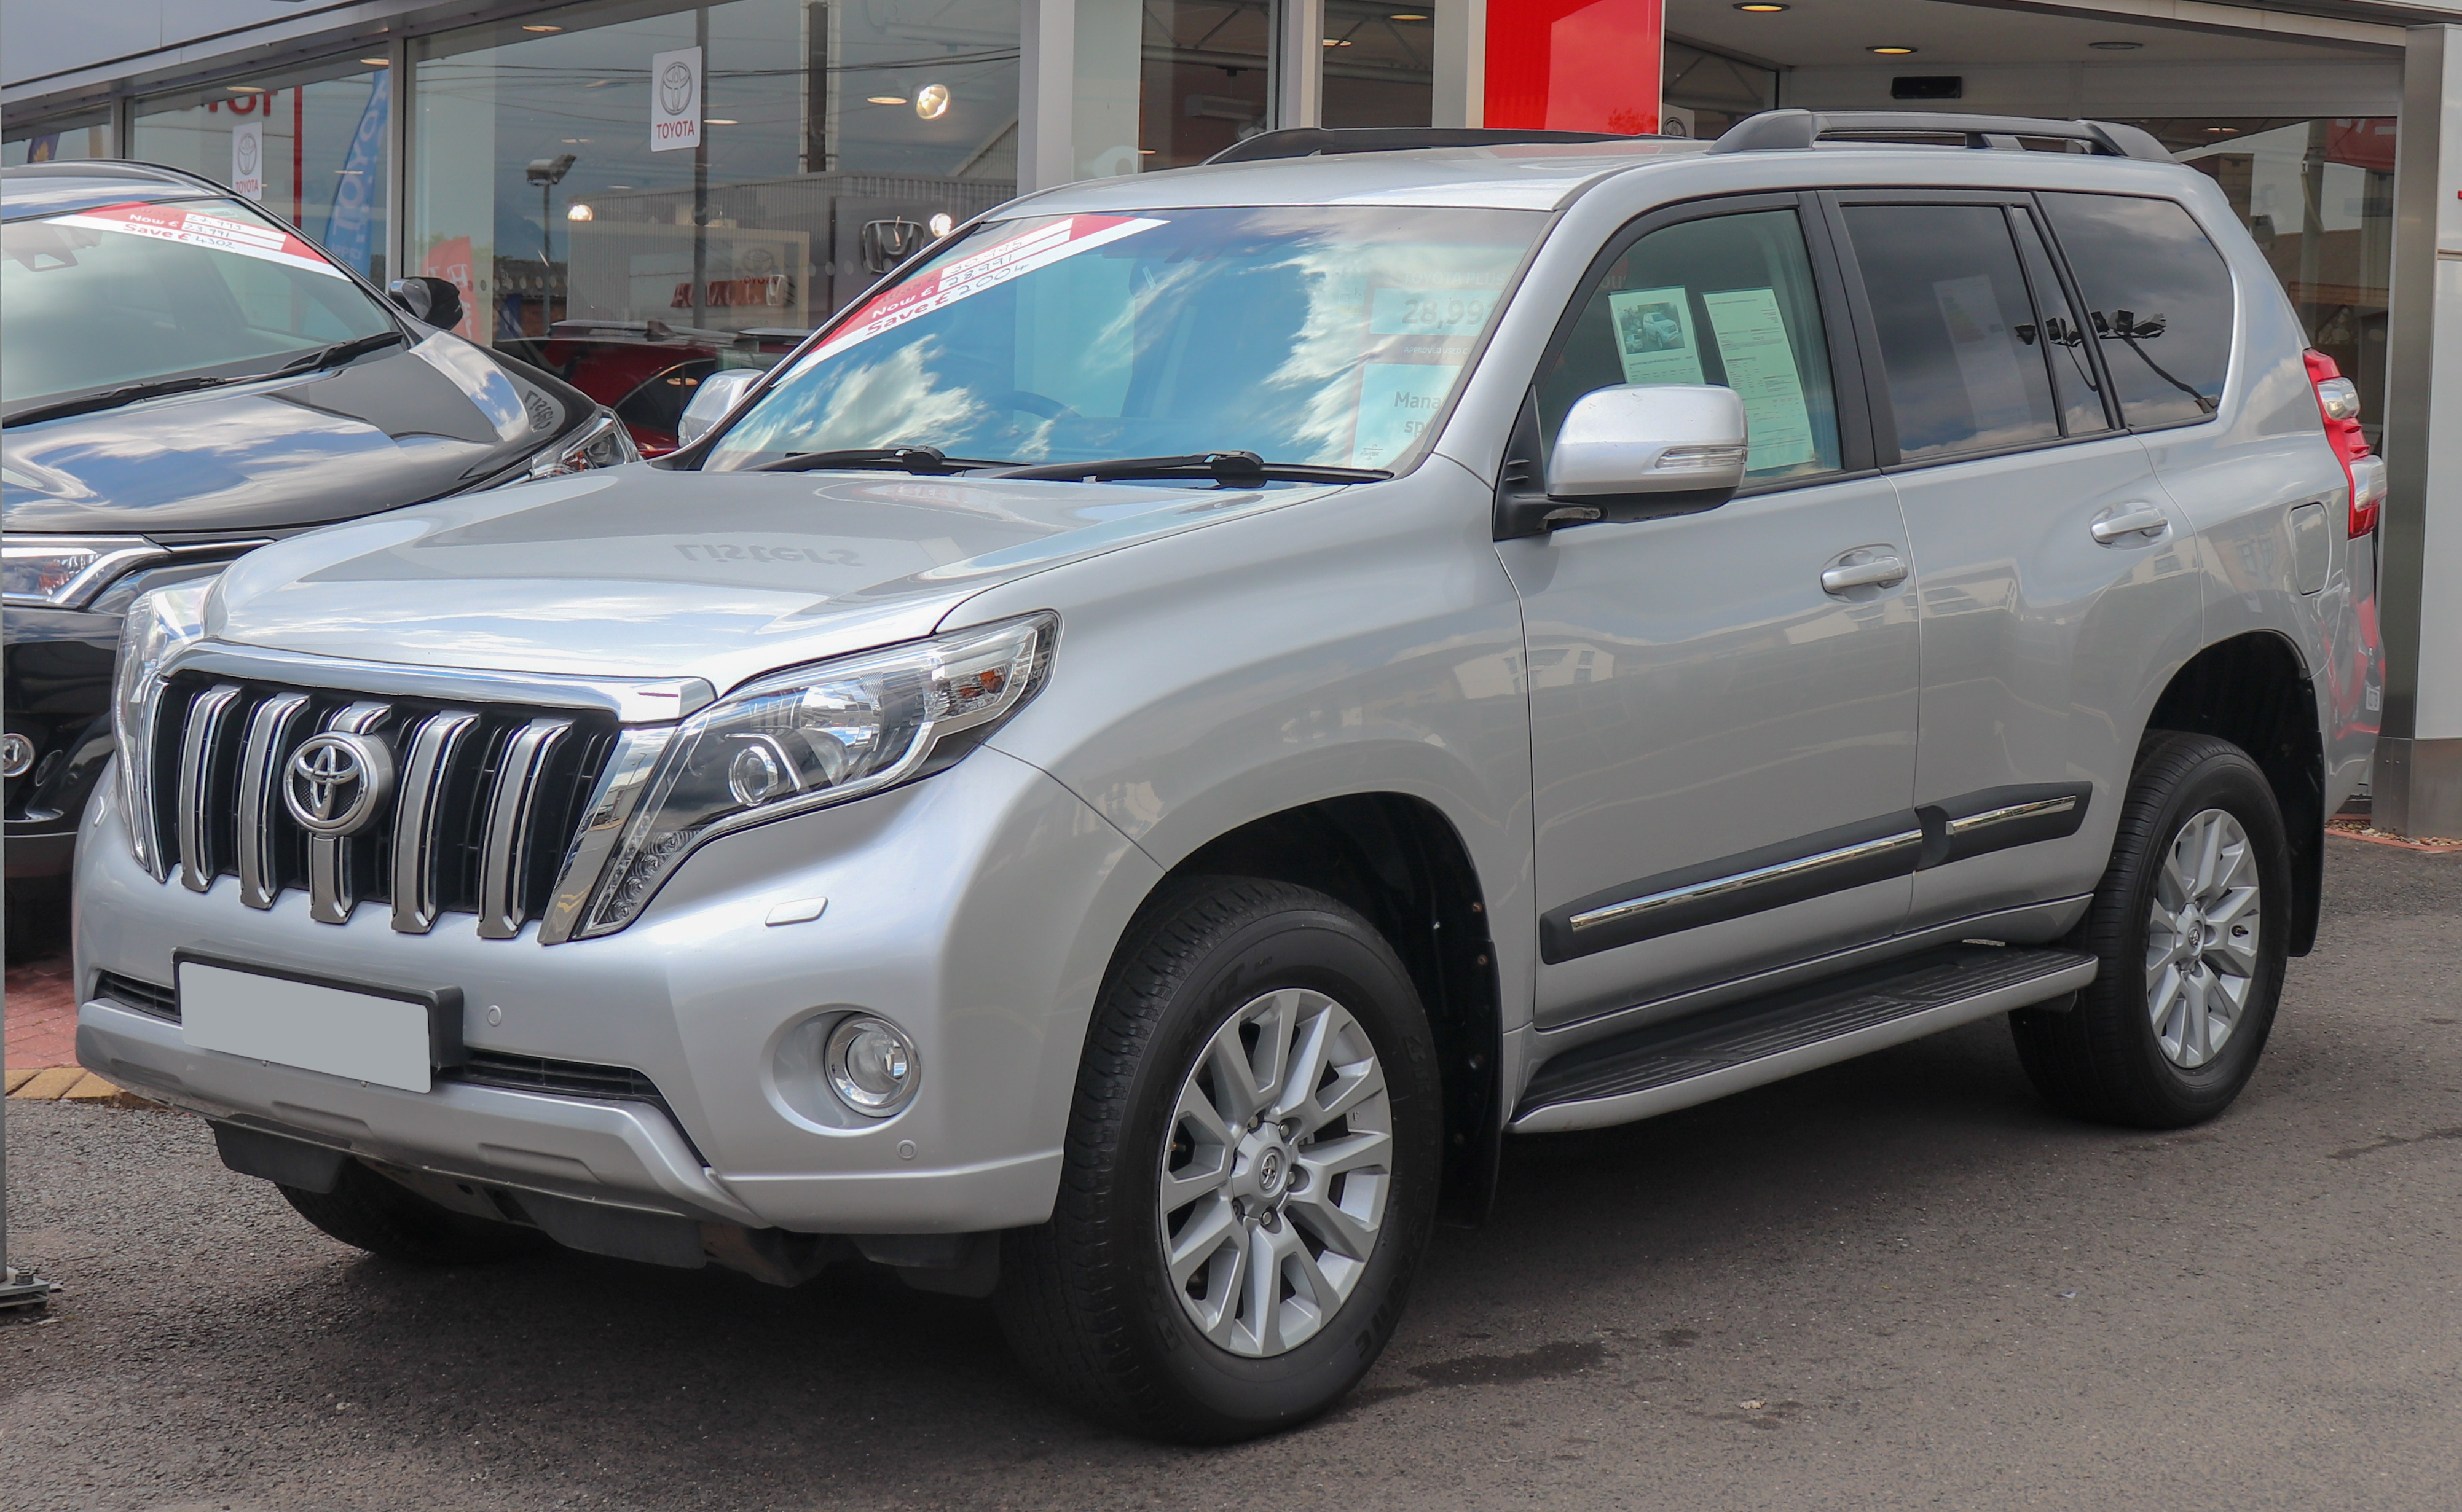 File:2015 Toyota Land Cruiser Icon D-4D 2 8 Front jpg